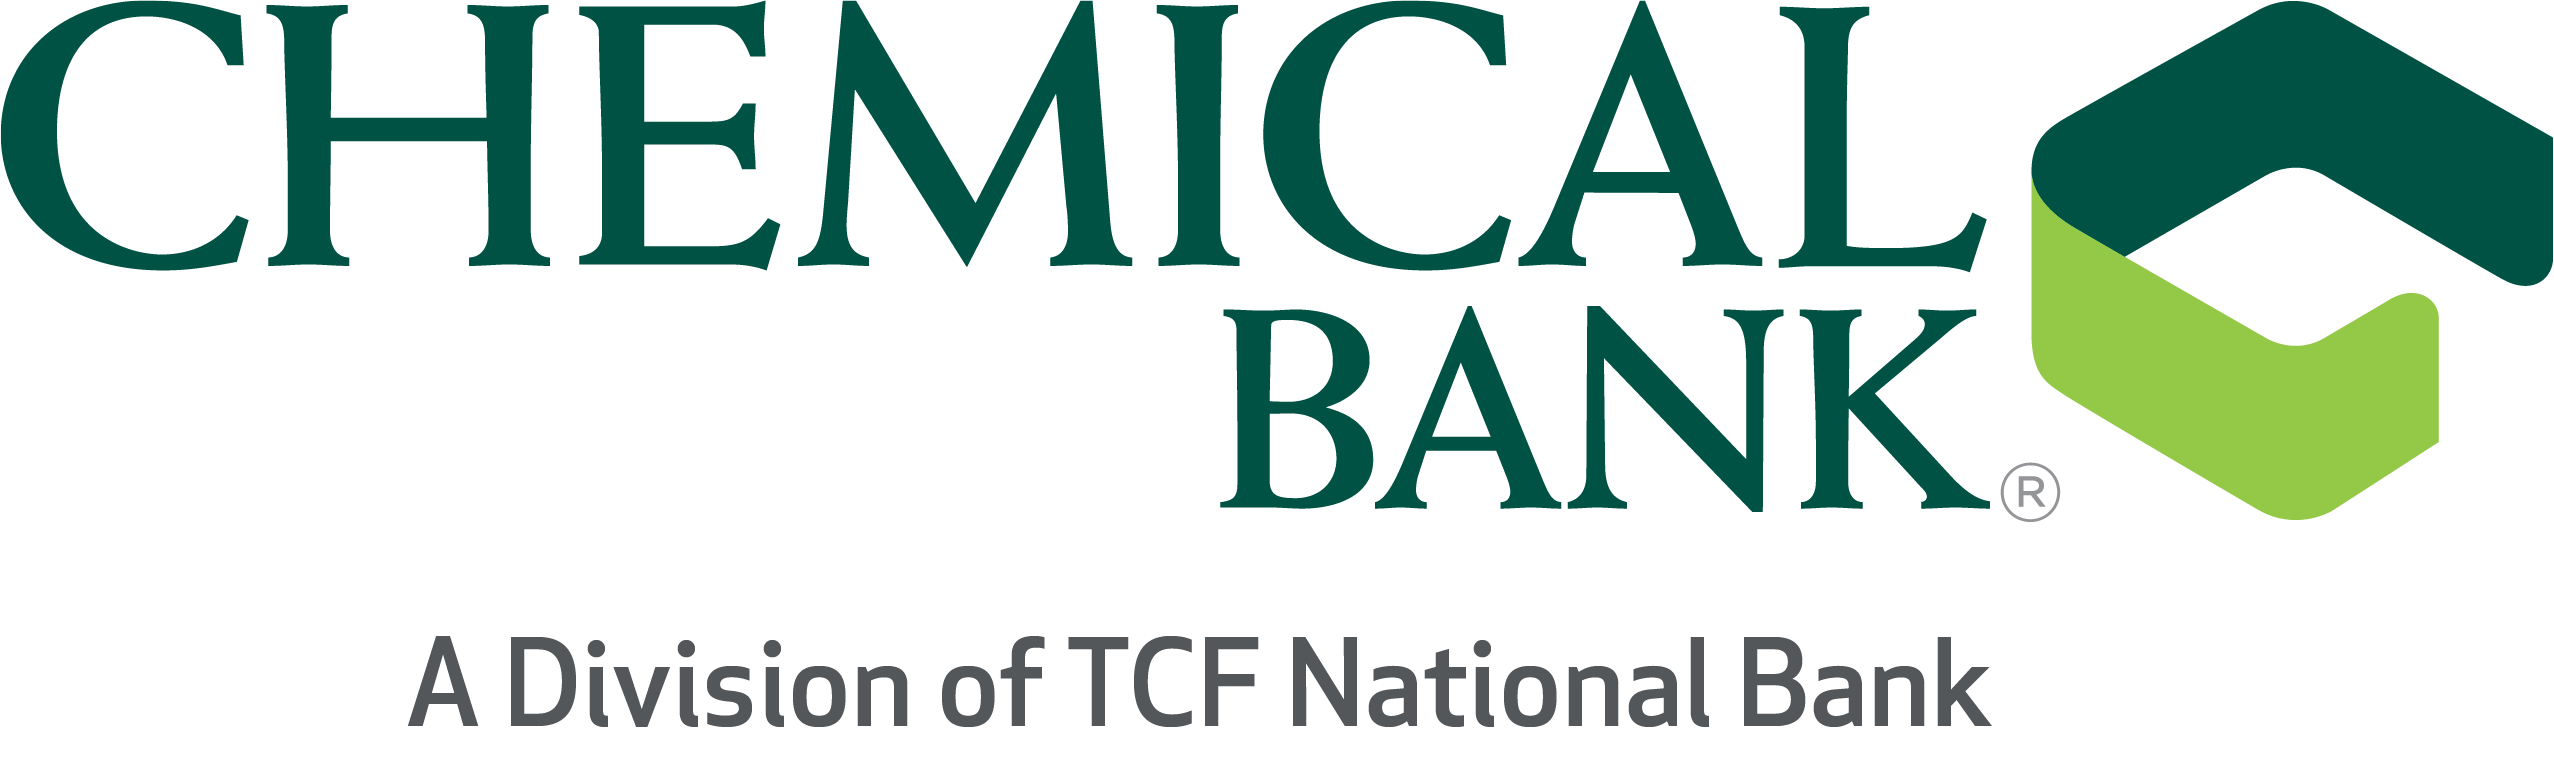 This year's Walk for Warmth is brought to you buy Chemical Bank, a Division of TCF National Bank.